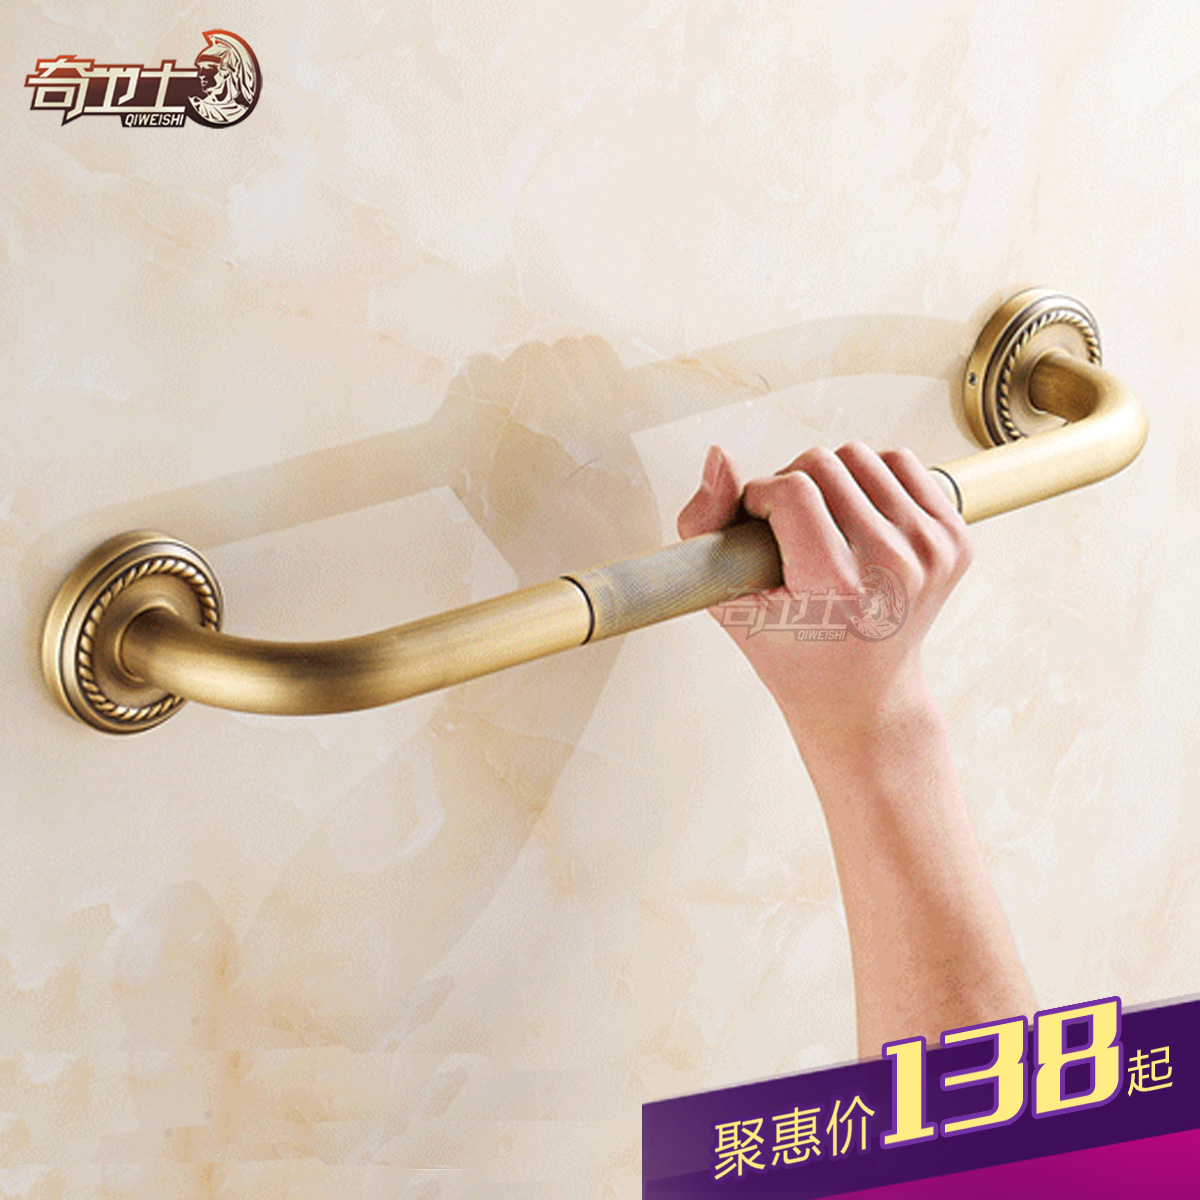 All copper bathroom slip handle bathroom bathtub handrails bathroom handrail safety handle bars thicker section